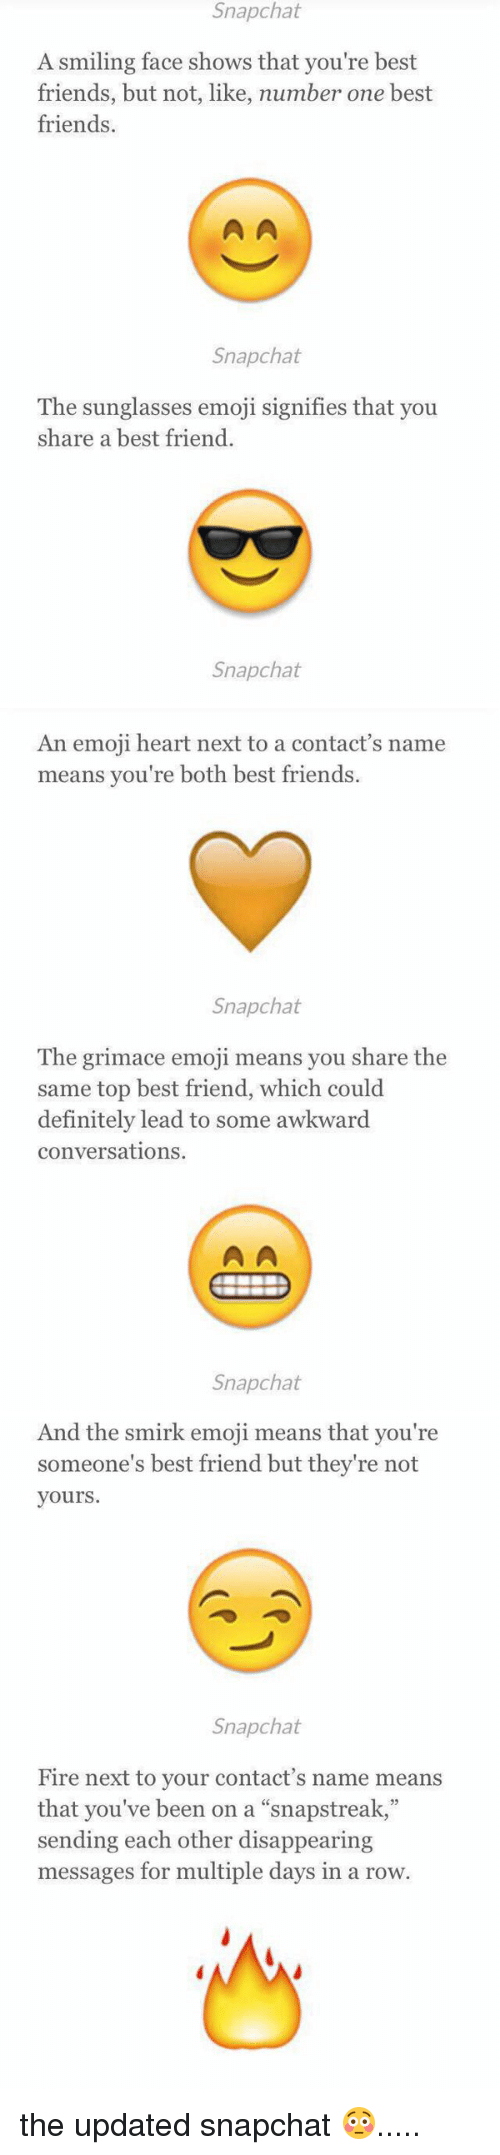 """Best Friend, Blackpeopletwitter, and Definitely: Snap chat  A smiling face shows that you're best  friends, but not, like, number one best  friends.  Snapchat  The sunglasses emoji signifies that you  share a best friend.  Snapchat   An emoji heart next to a contact's name  means you're both best friends.  Snapchat  The grimace emoji means you share the  same top best friend, which could  definitely lead to some awkward  conversations.  Snapchat   And the smirk emoji means that you're  someone's best friend but they're not  yours.  Snapchat  Fire next to your contact's name means  that you've been on a """"snapstreak,""""  sending each other disappearing  messages for multiple days in a row. the updated snapchat 😳....."""